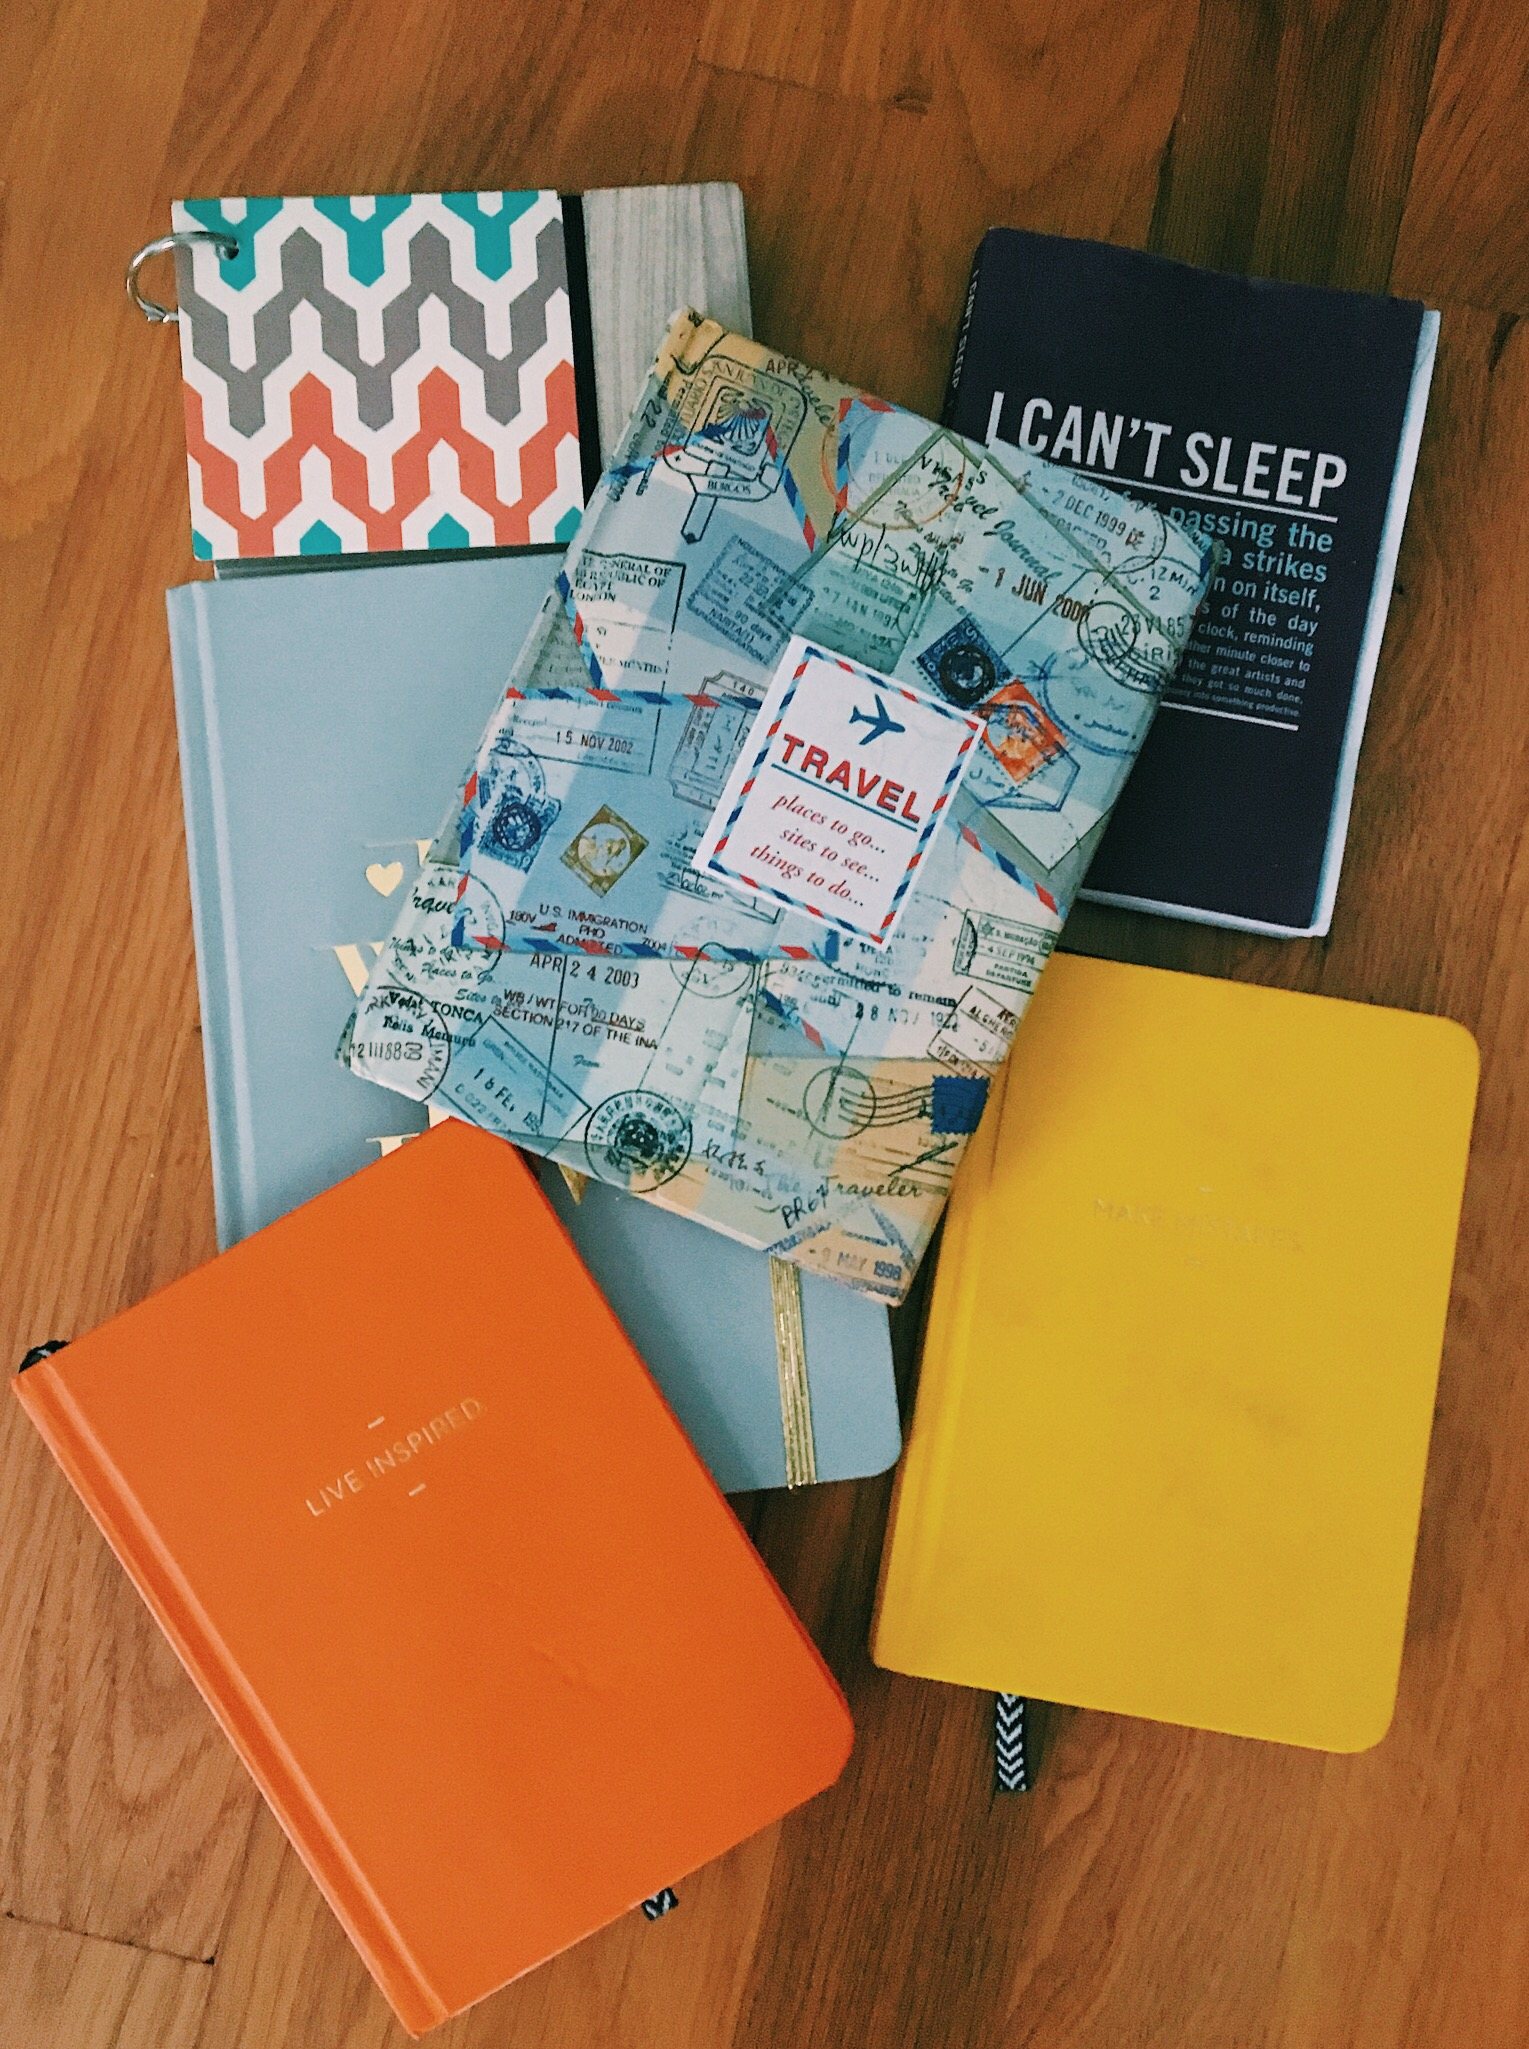 I keep several different journals at the same time, but each is about something unique. One is even dedicated to one trip I really miss (that's how specific you can get with your writing)!